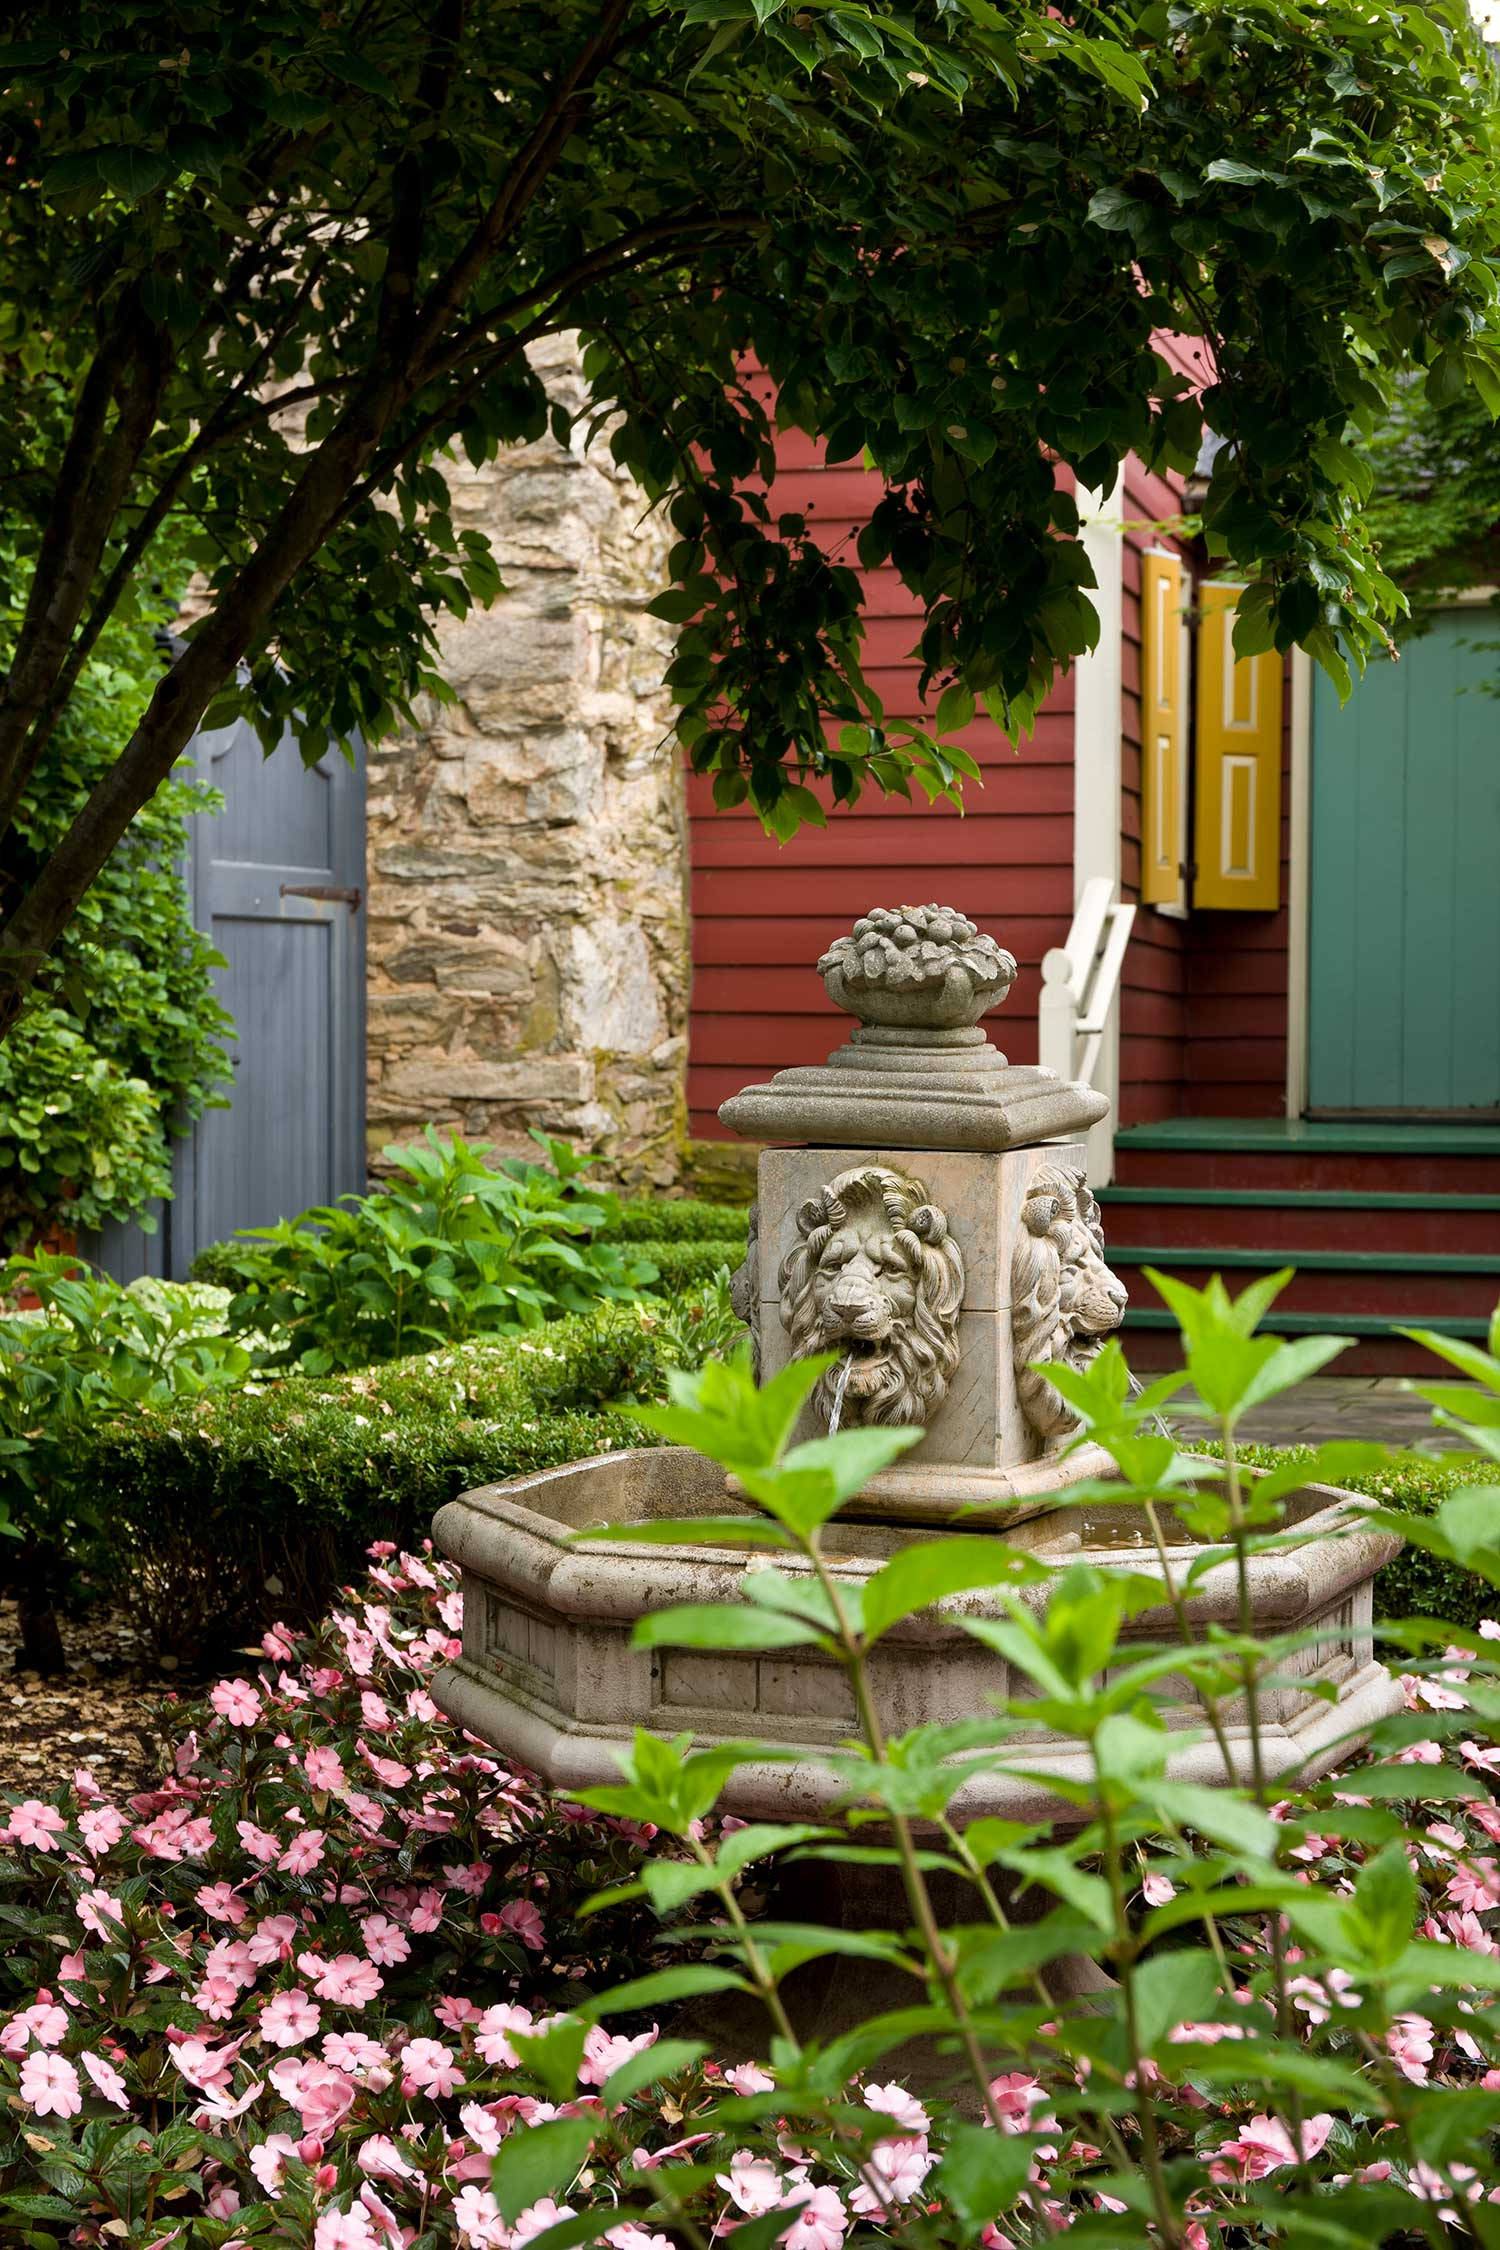 The Mayor's House garden with a stone fountain with a carved lion head on it. The fountain is surrounded by lush greenery and pink flowers.